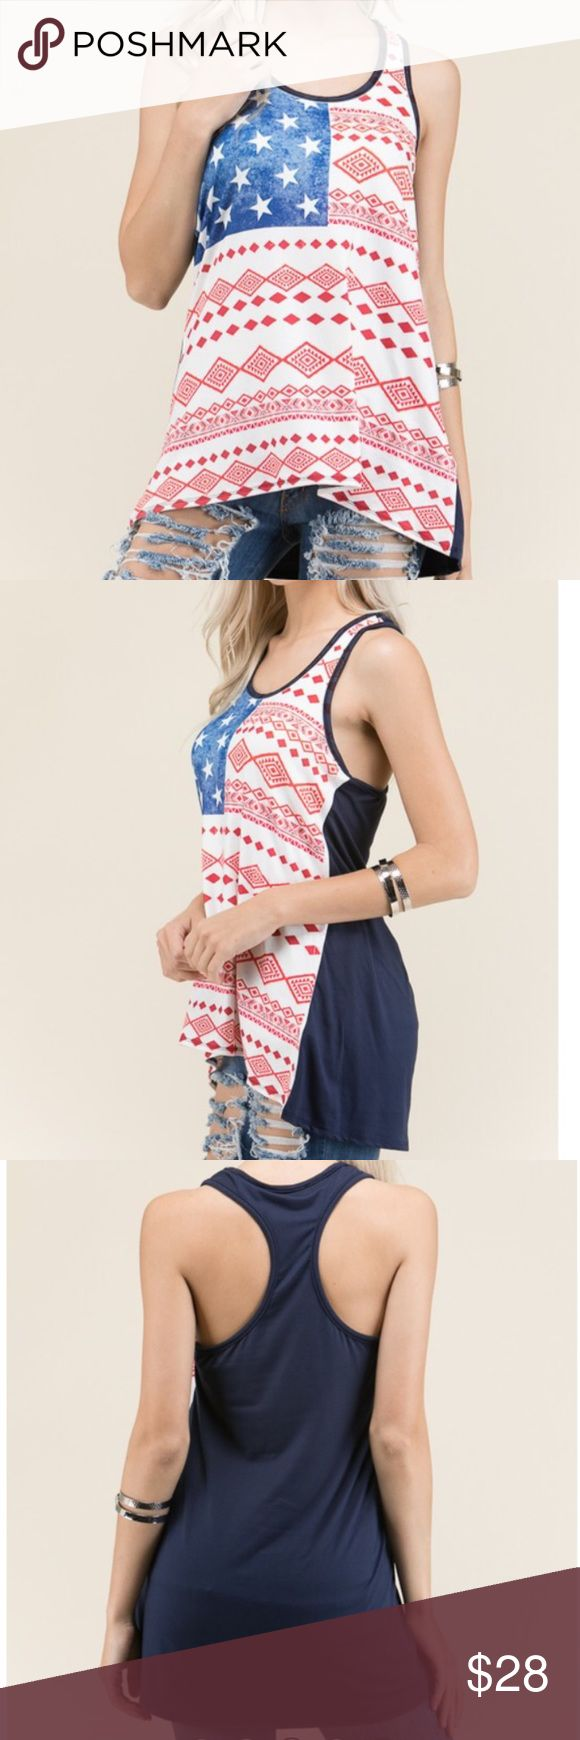 American Flag Patriotic Tank Top Racerback American flag tank top. 95% polyester 5% Spandex. Made in the USA. Boutique Tops Tank Tops